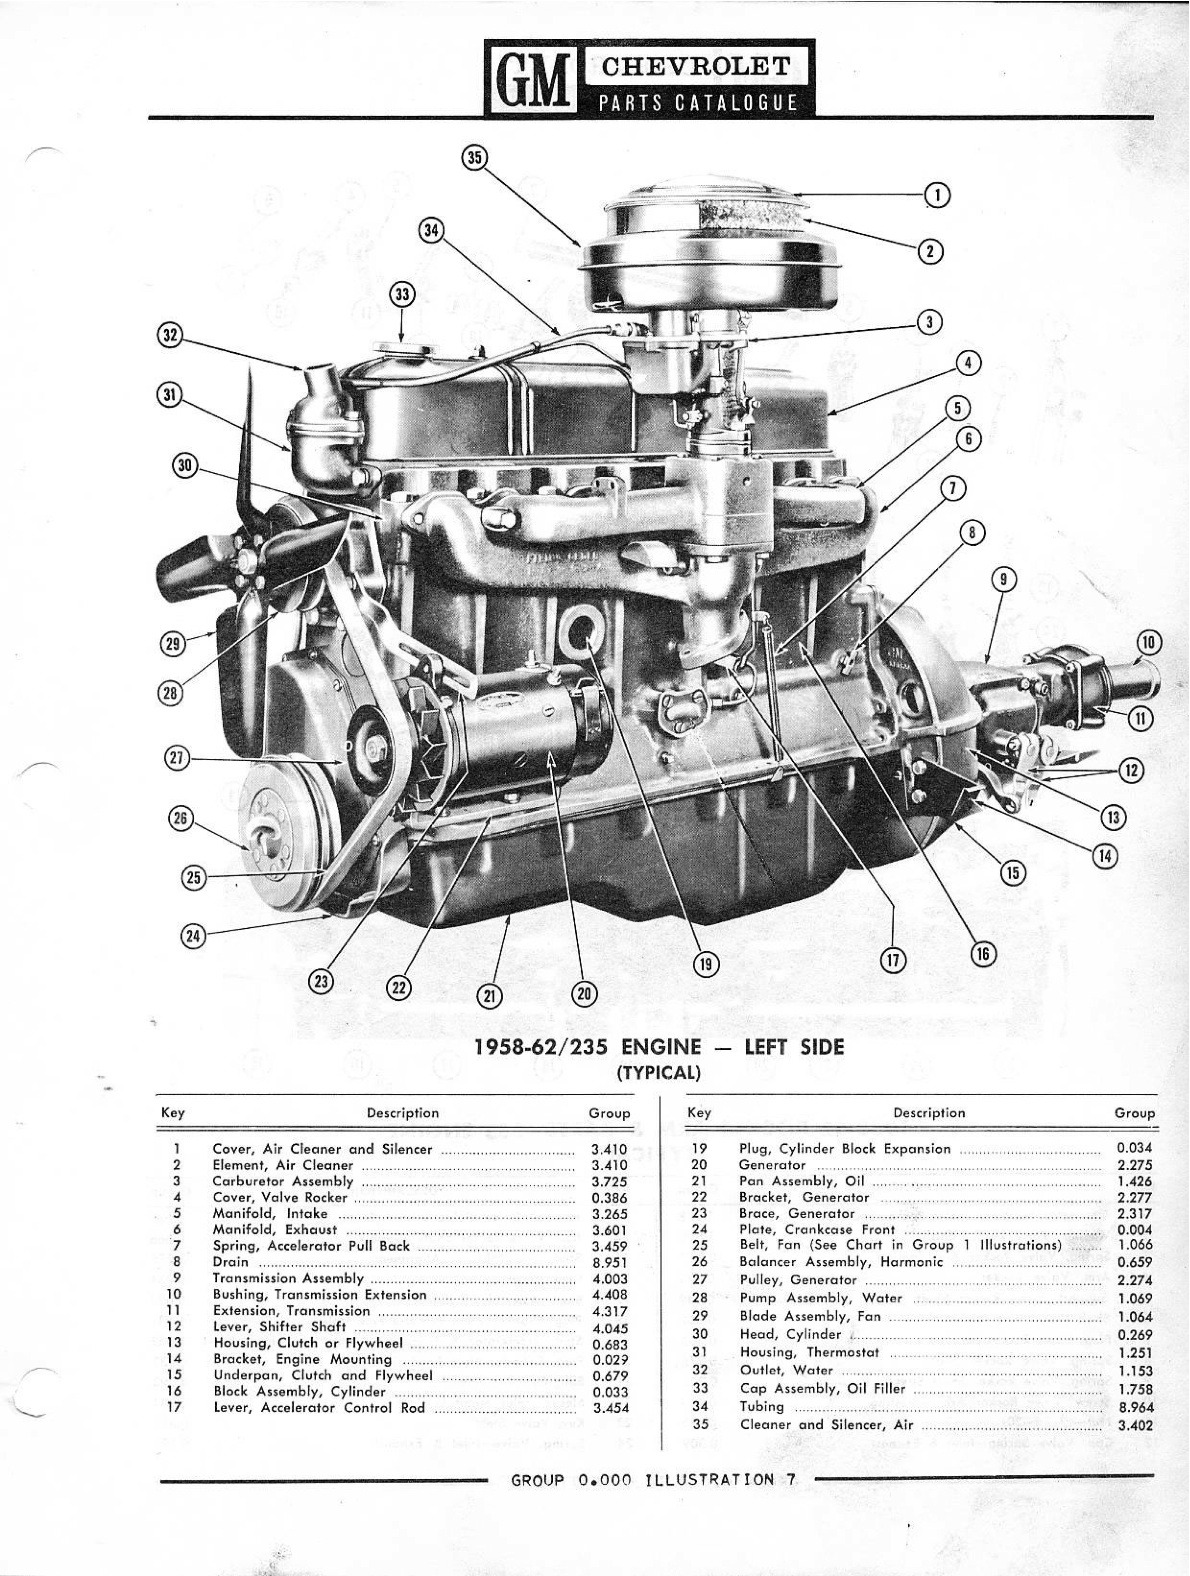 1958-1967-3chevrolet-chevy-parts-and-illustration-catalog